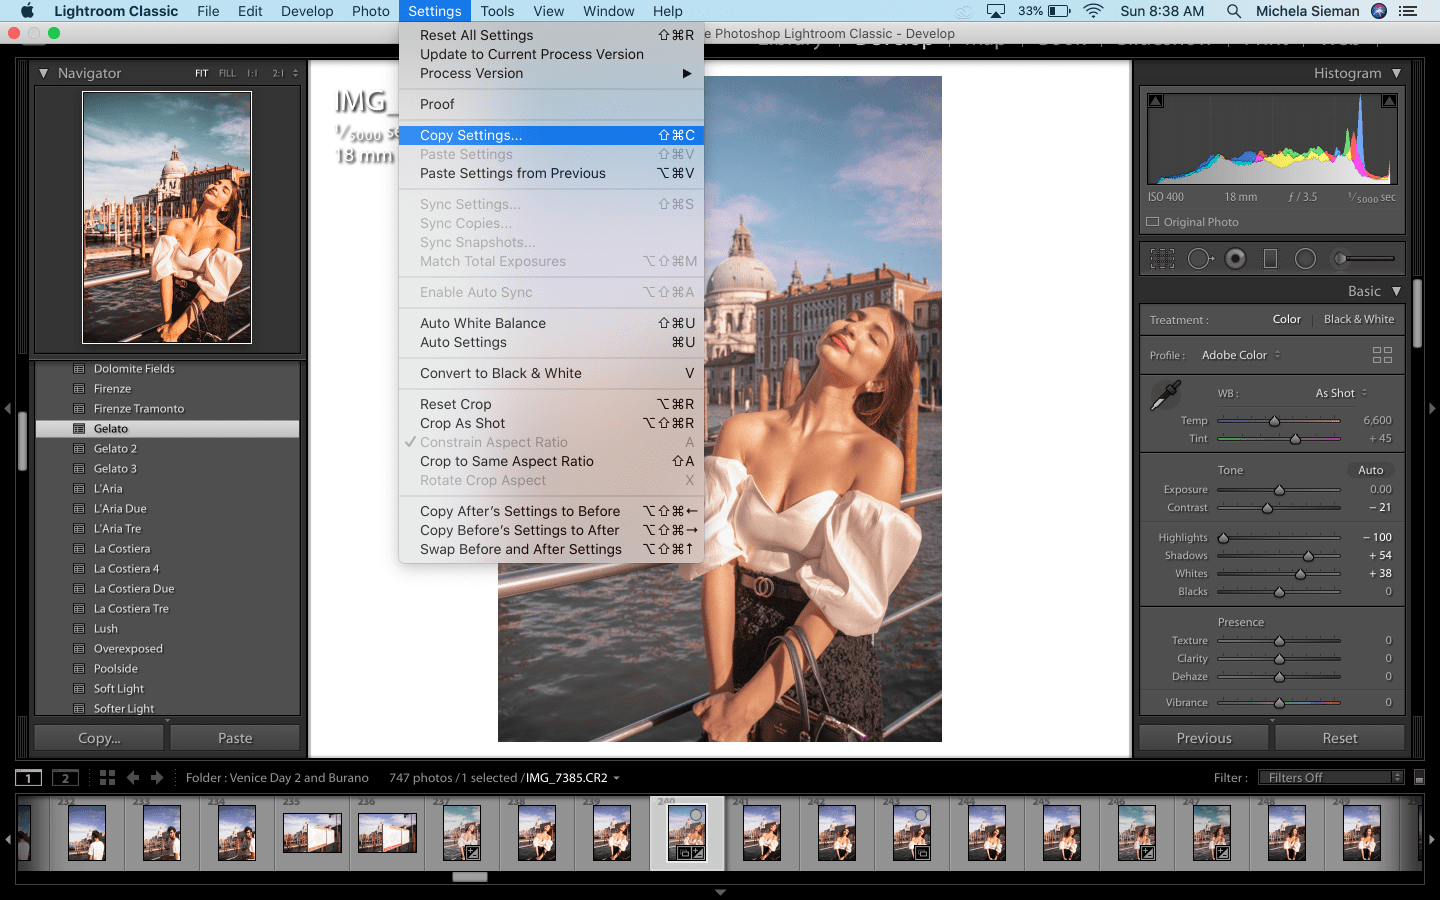 Copy and Paste Settings - Adobe Lightroom shortcut